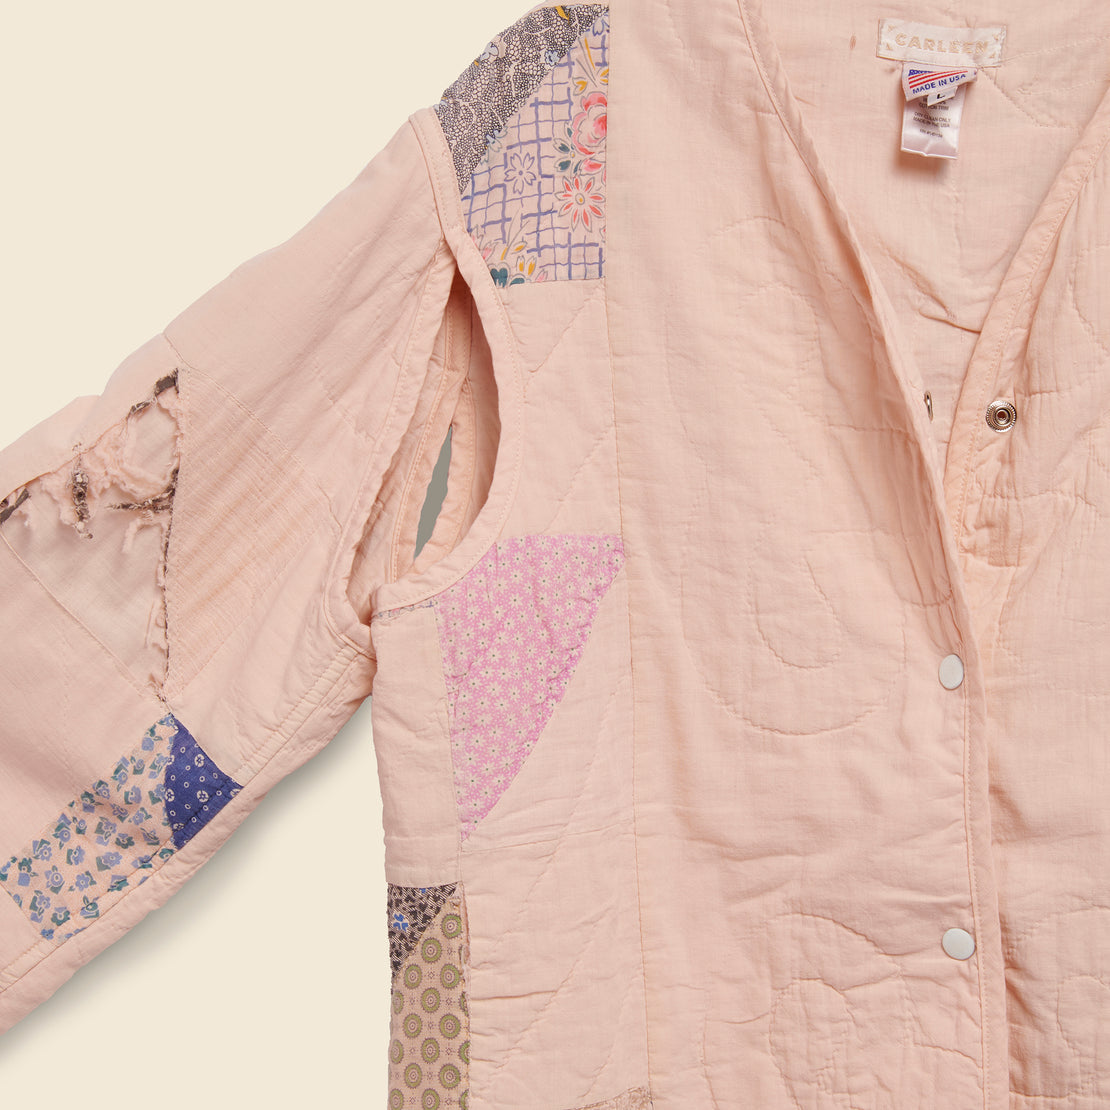 Quilt Liner Jacket - Pink Overdye, Triangle Sides